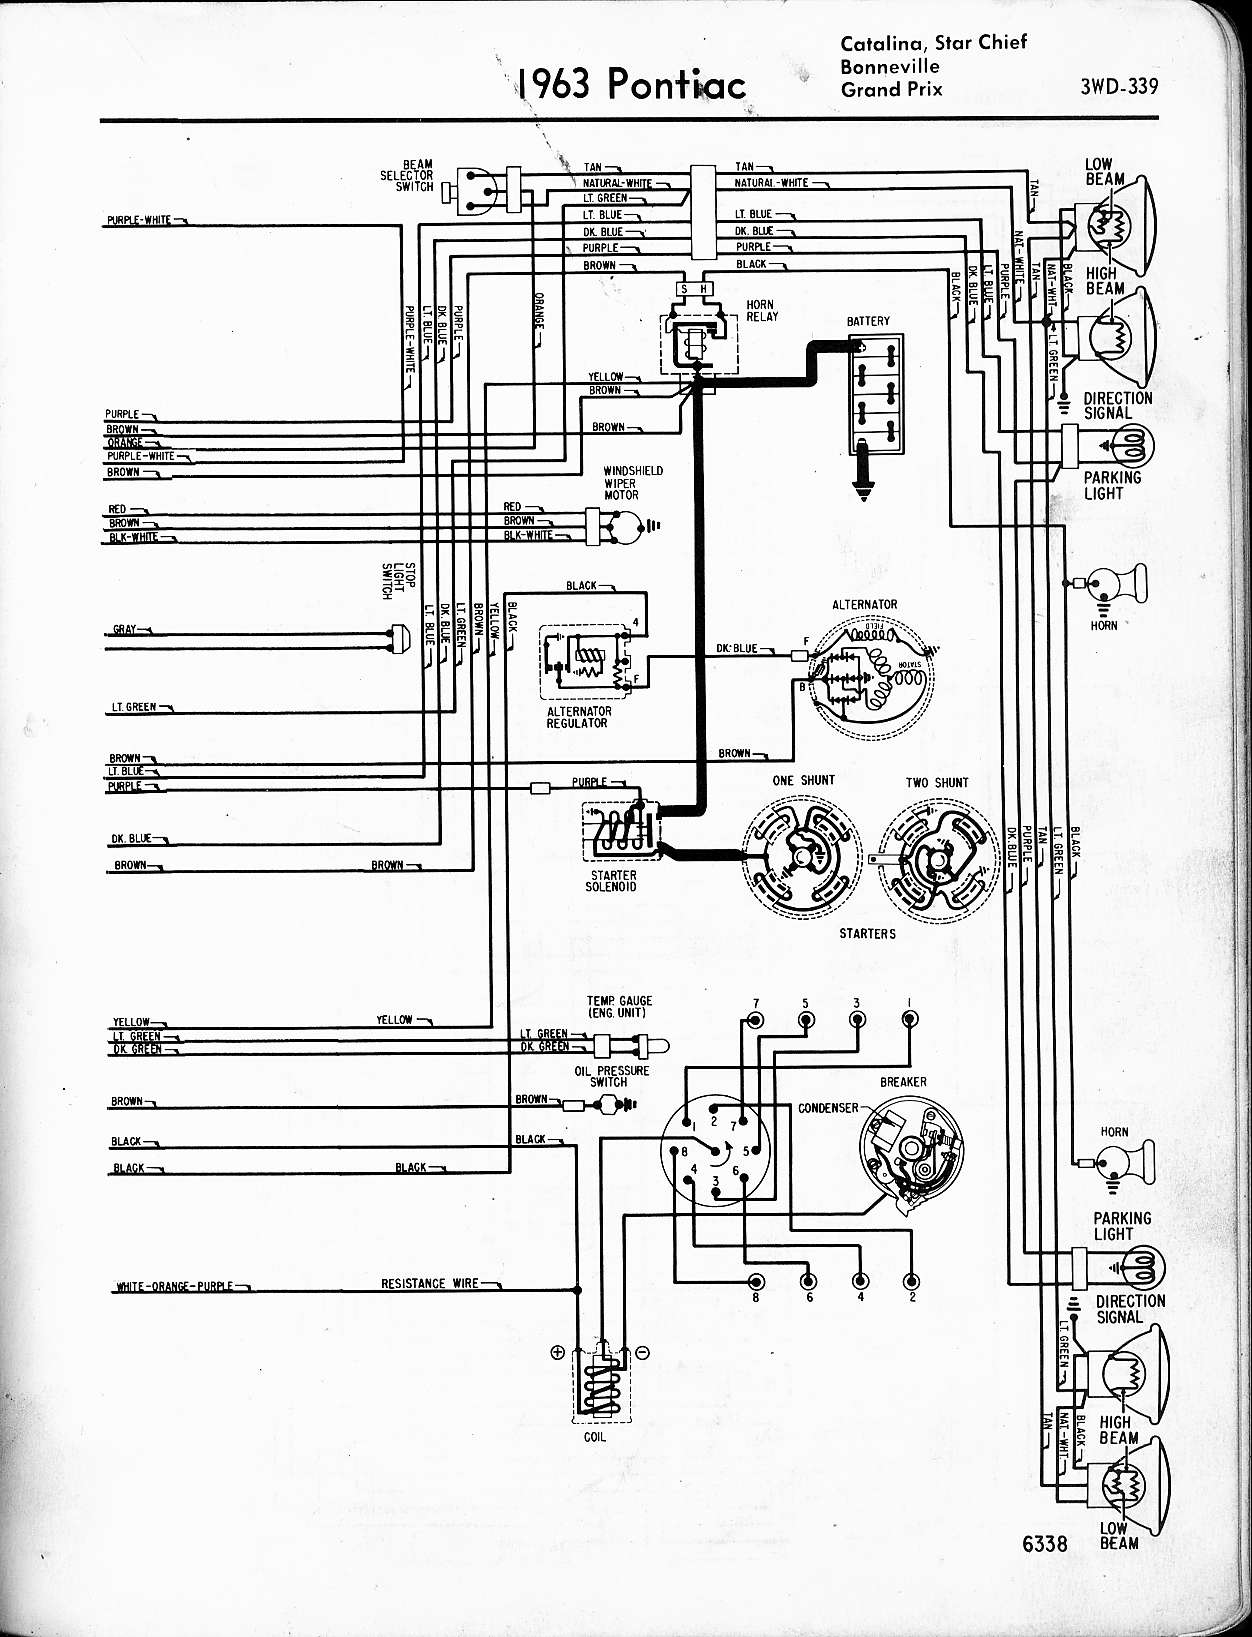 MWire5765 339 wallace racing wiring diagrams pontiac grand prix wiring diagrams at fashall.co